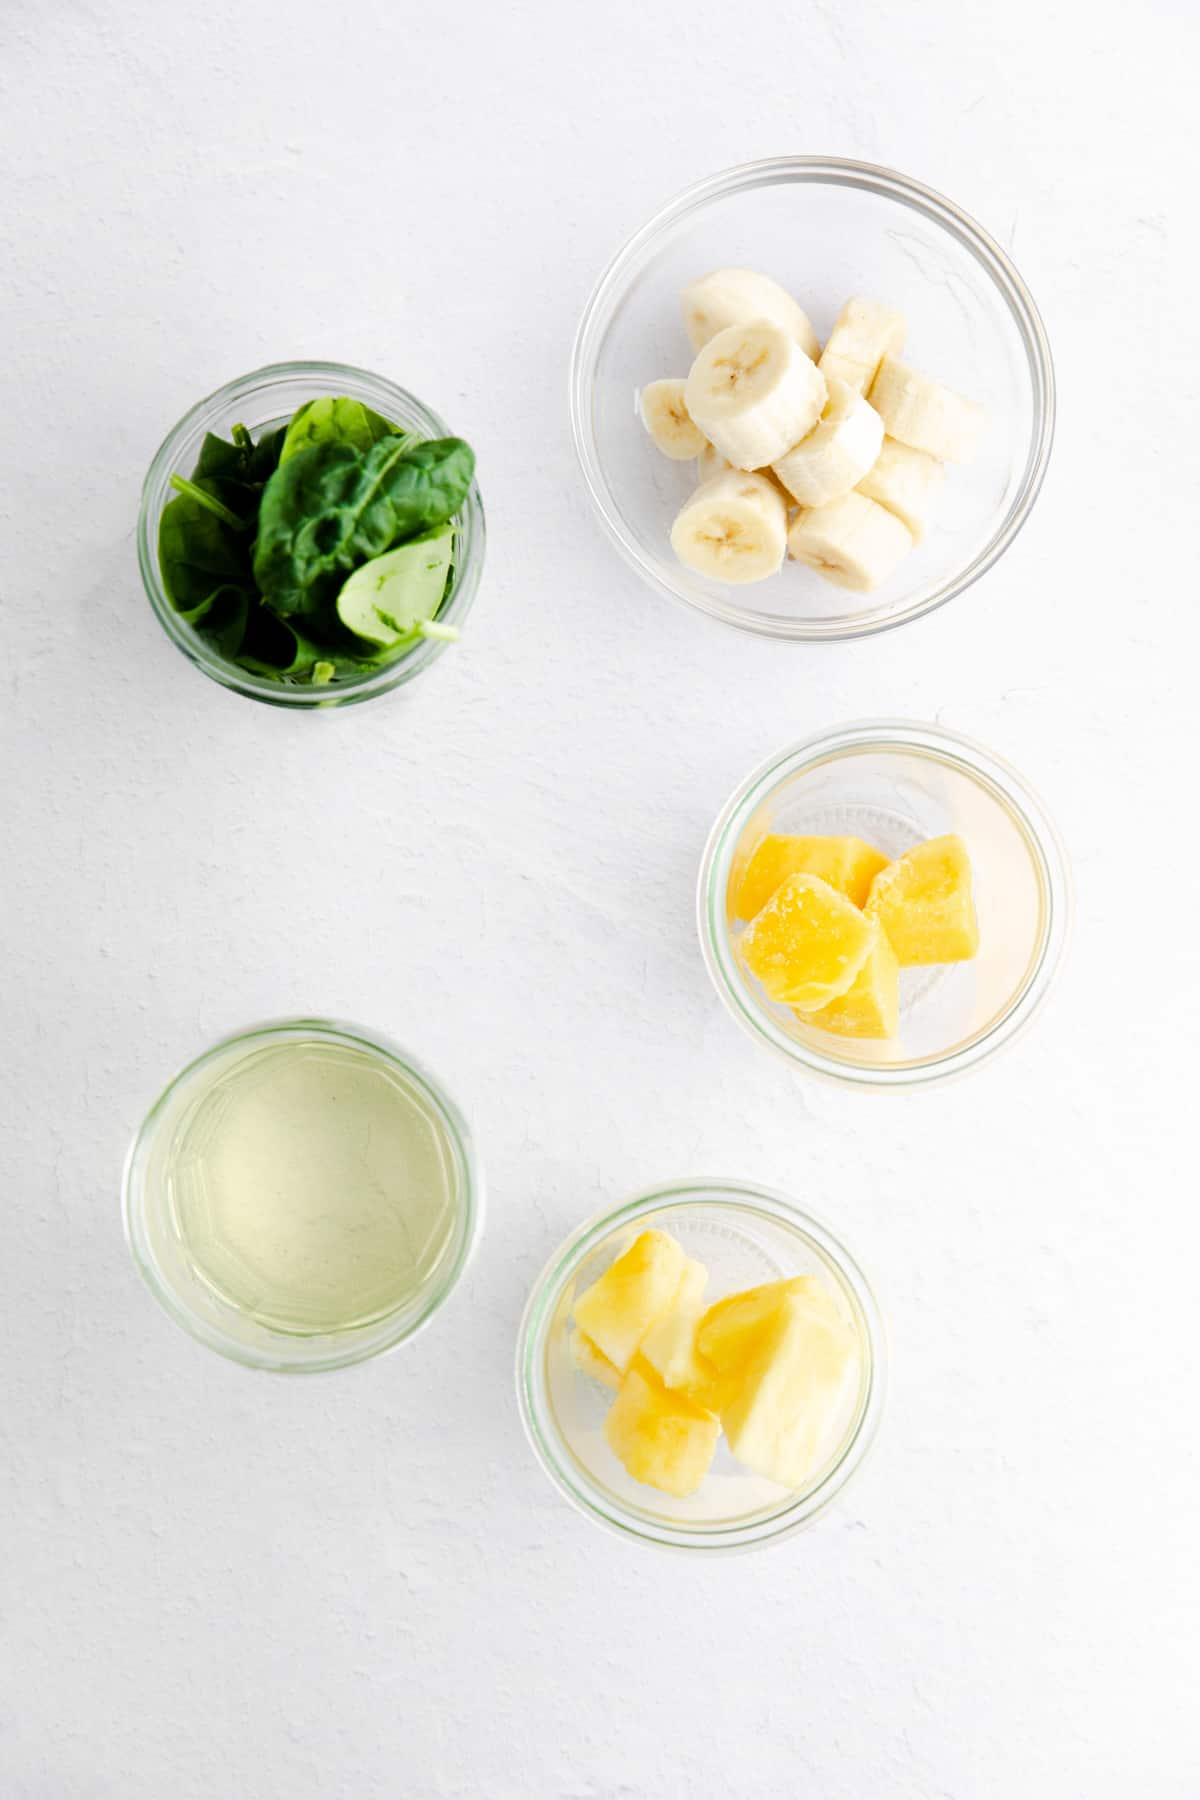 Ingredients needed to make a Green Smoothie Recipe